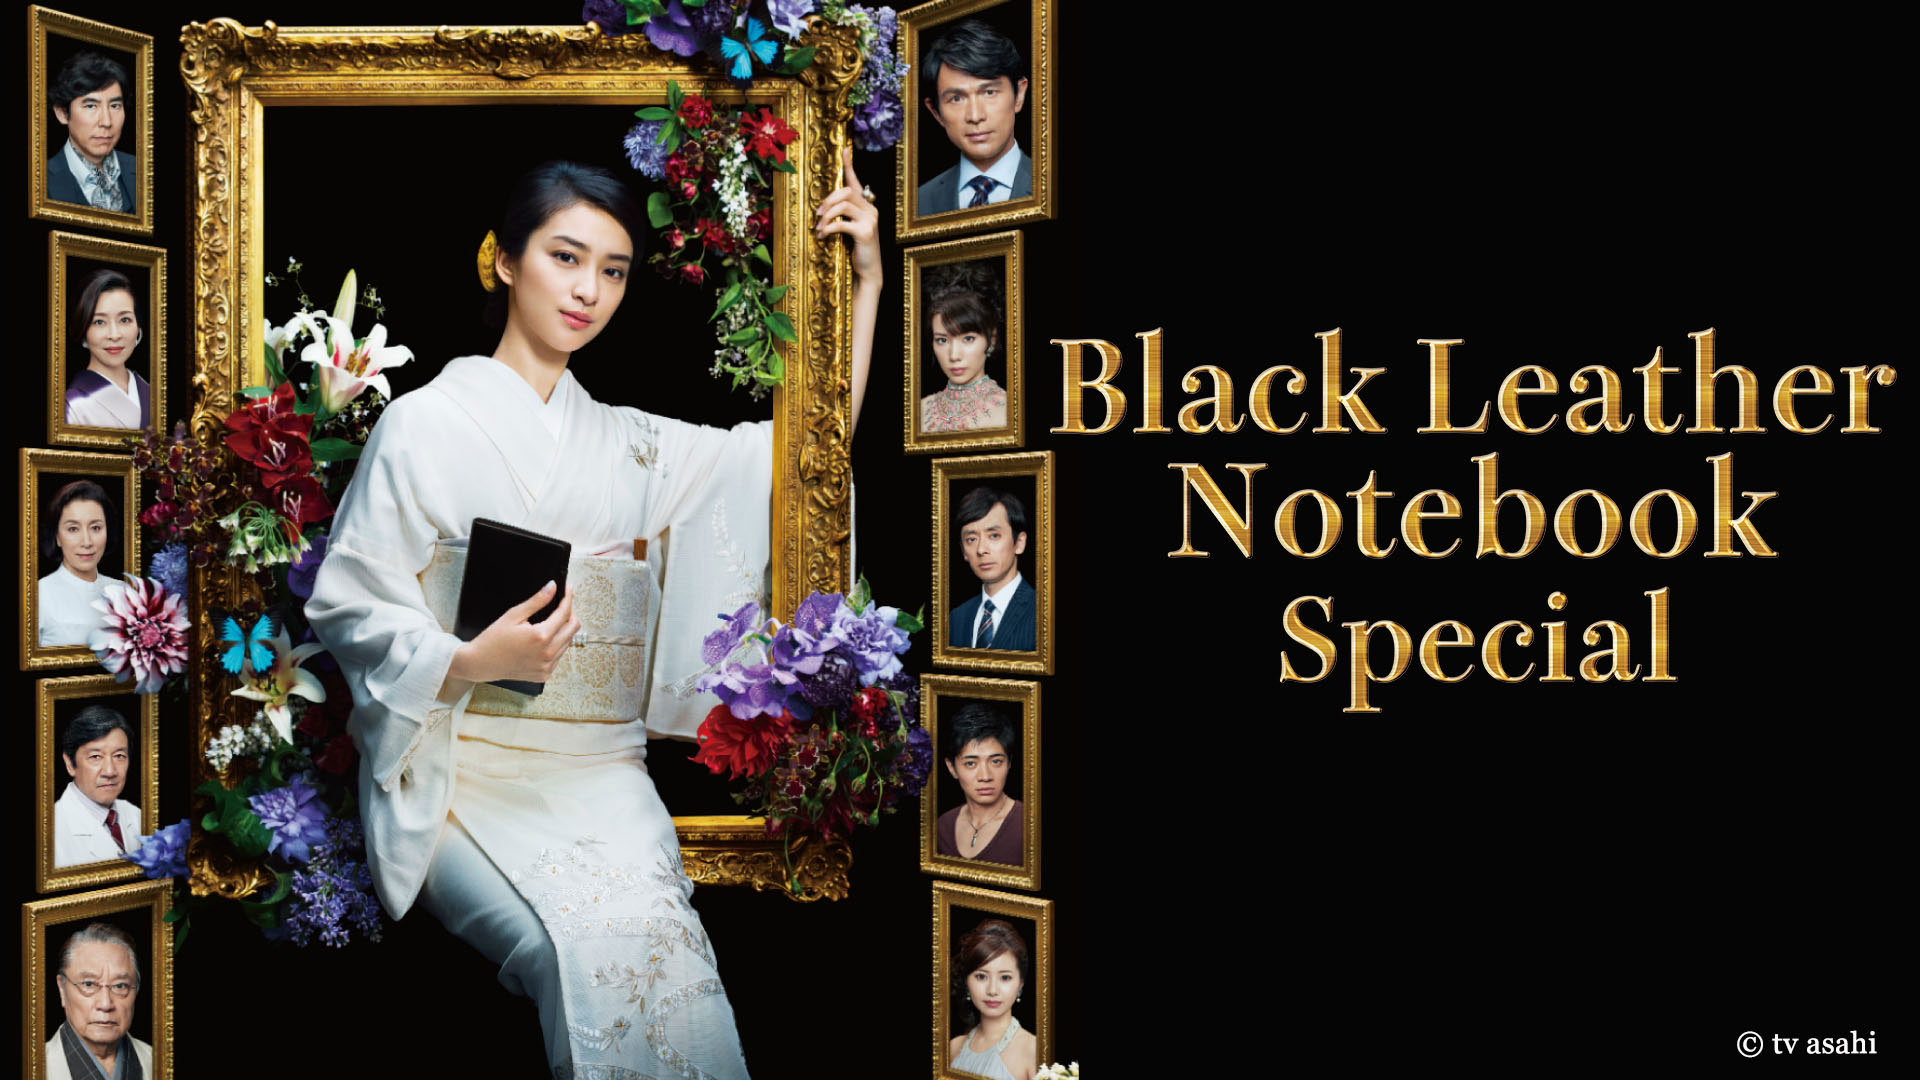 Black Leather Notebook Special